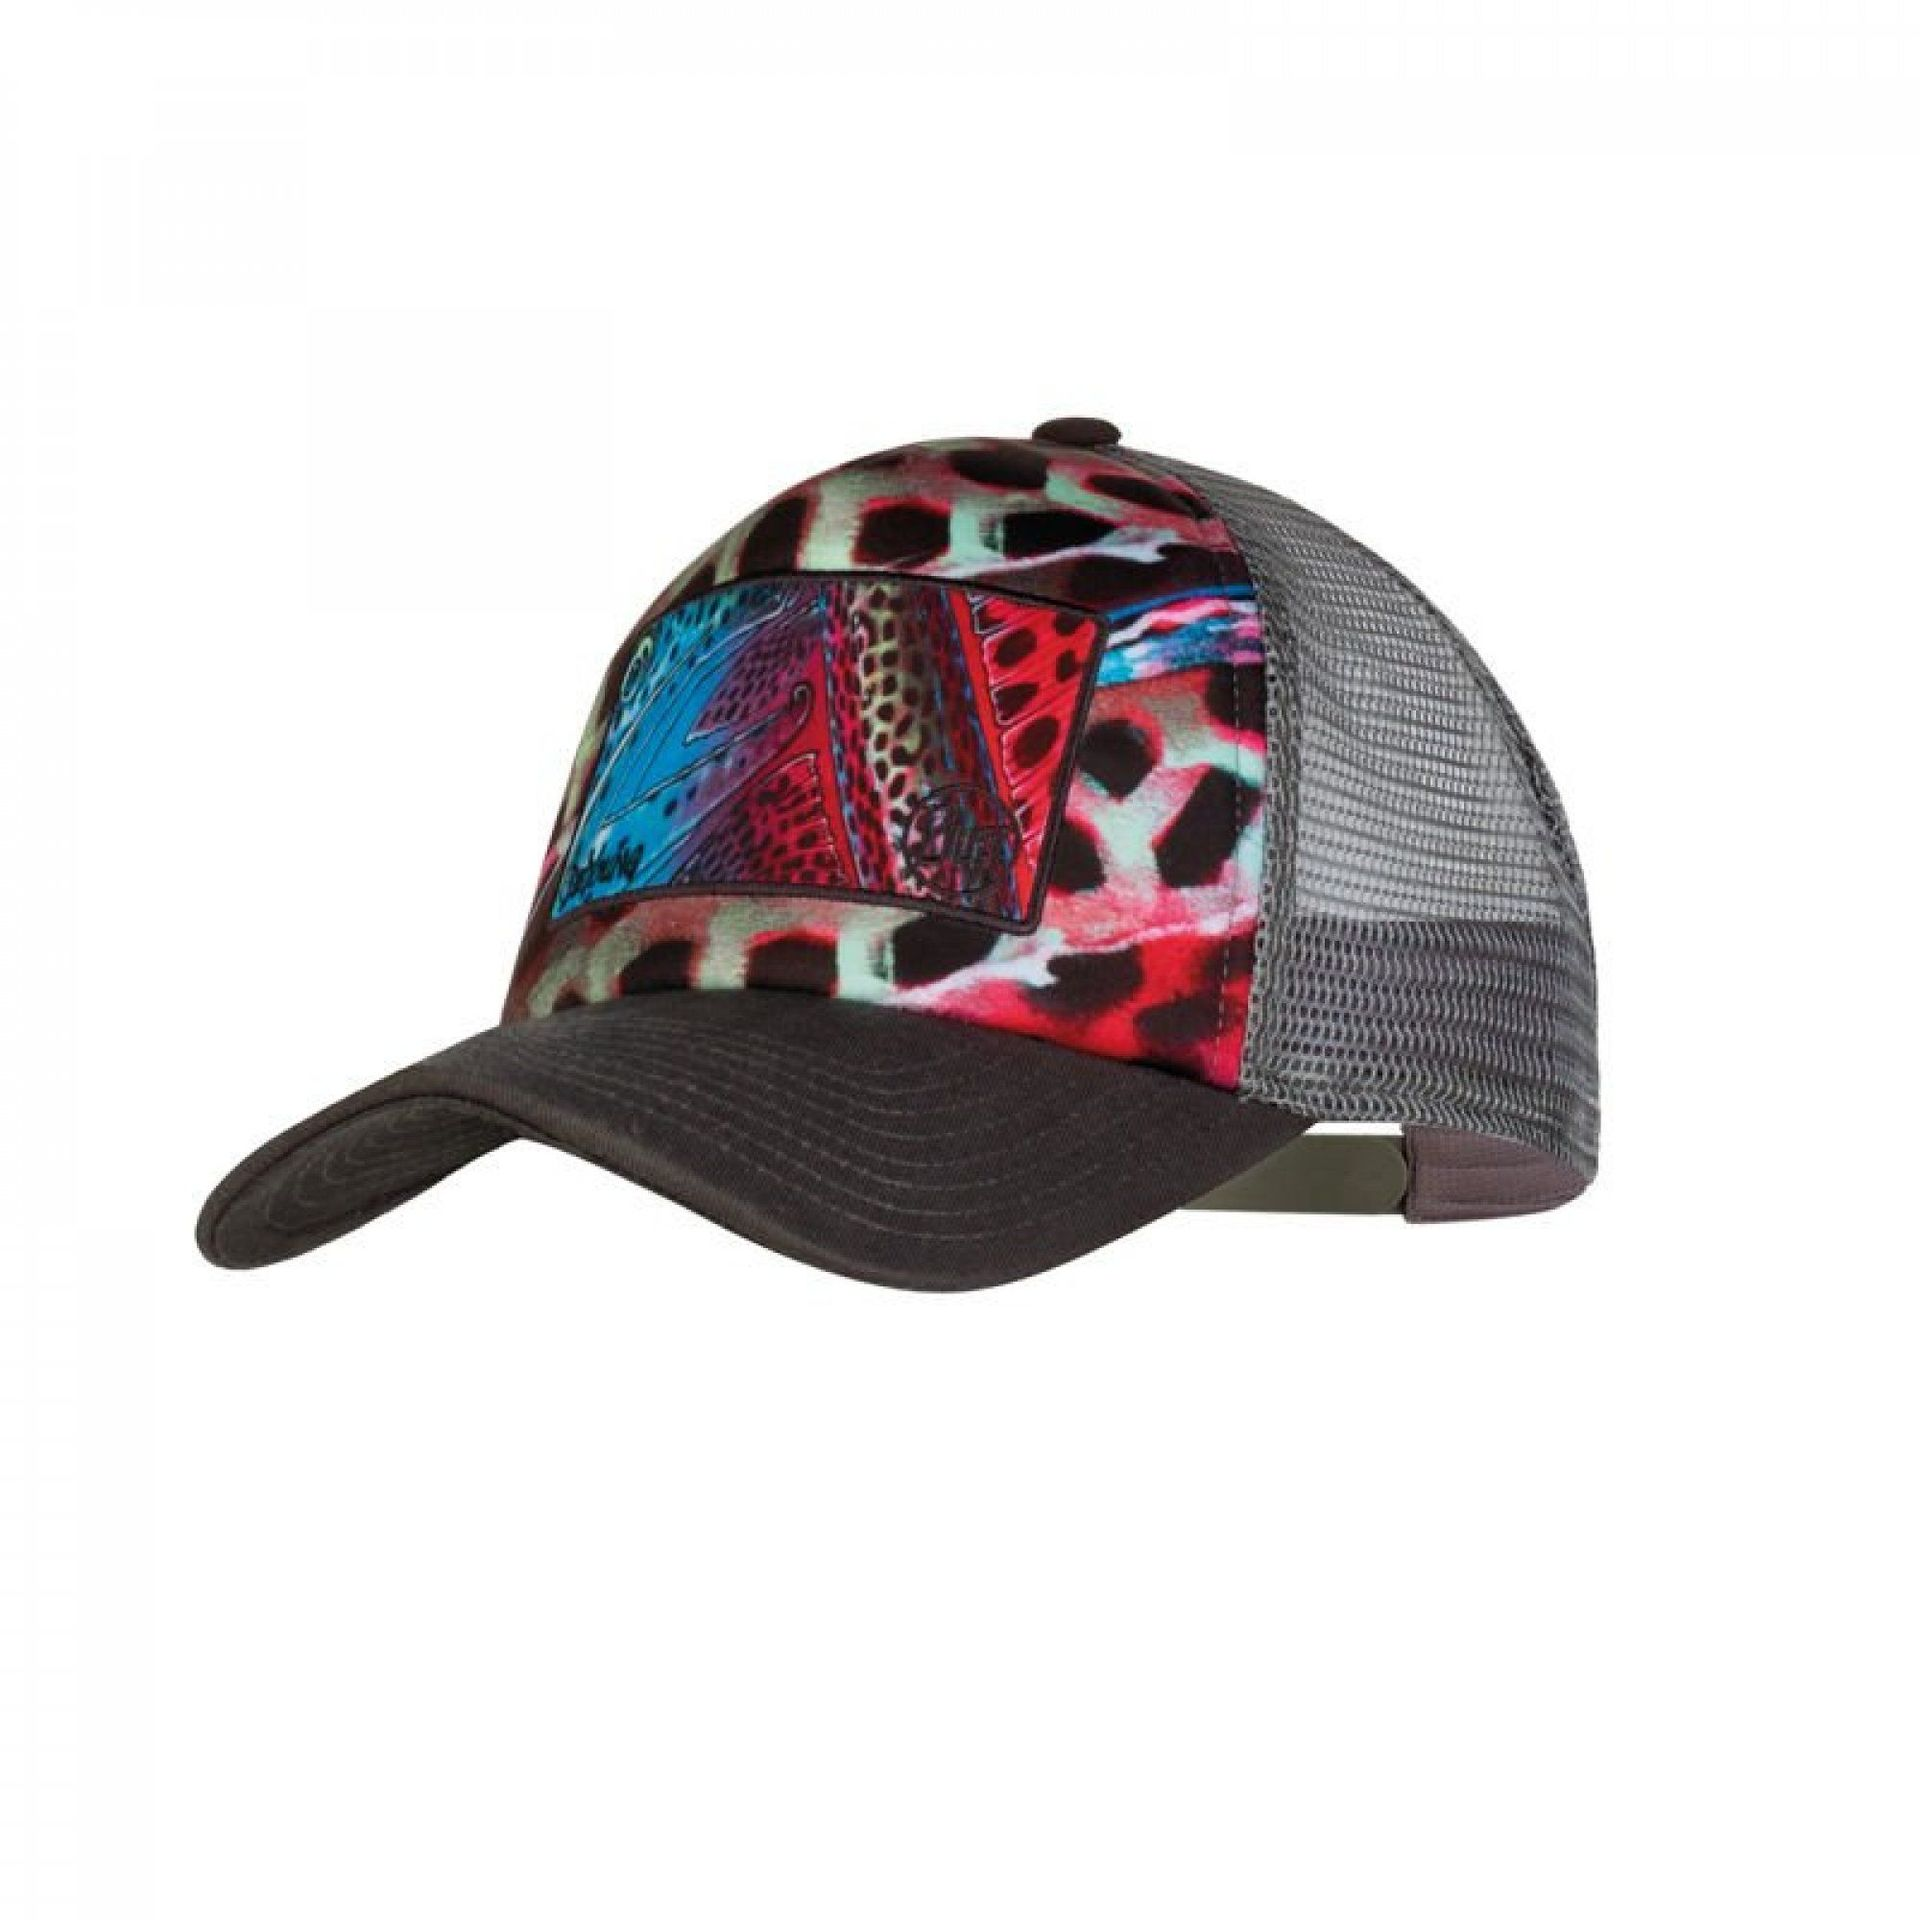 DEREK DE YOUNG TRUCKER CAP  END OF THE RAINBOW 1